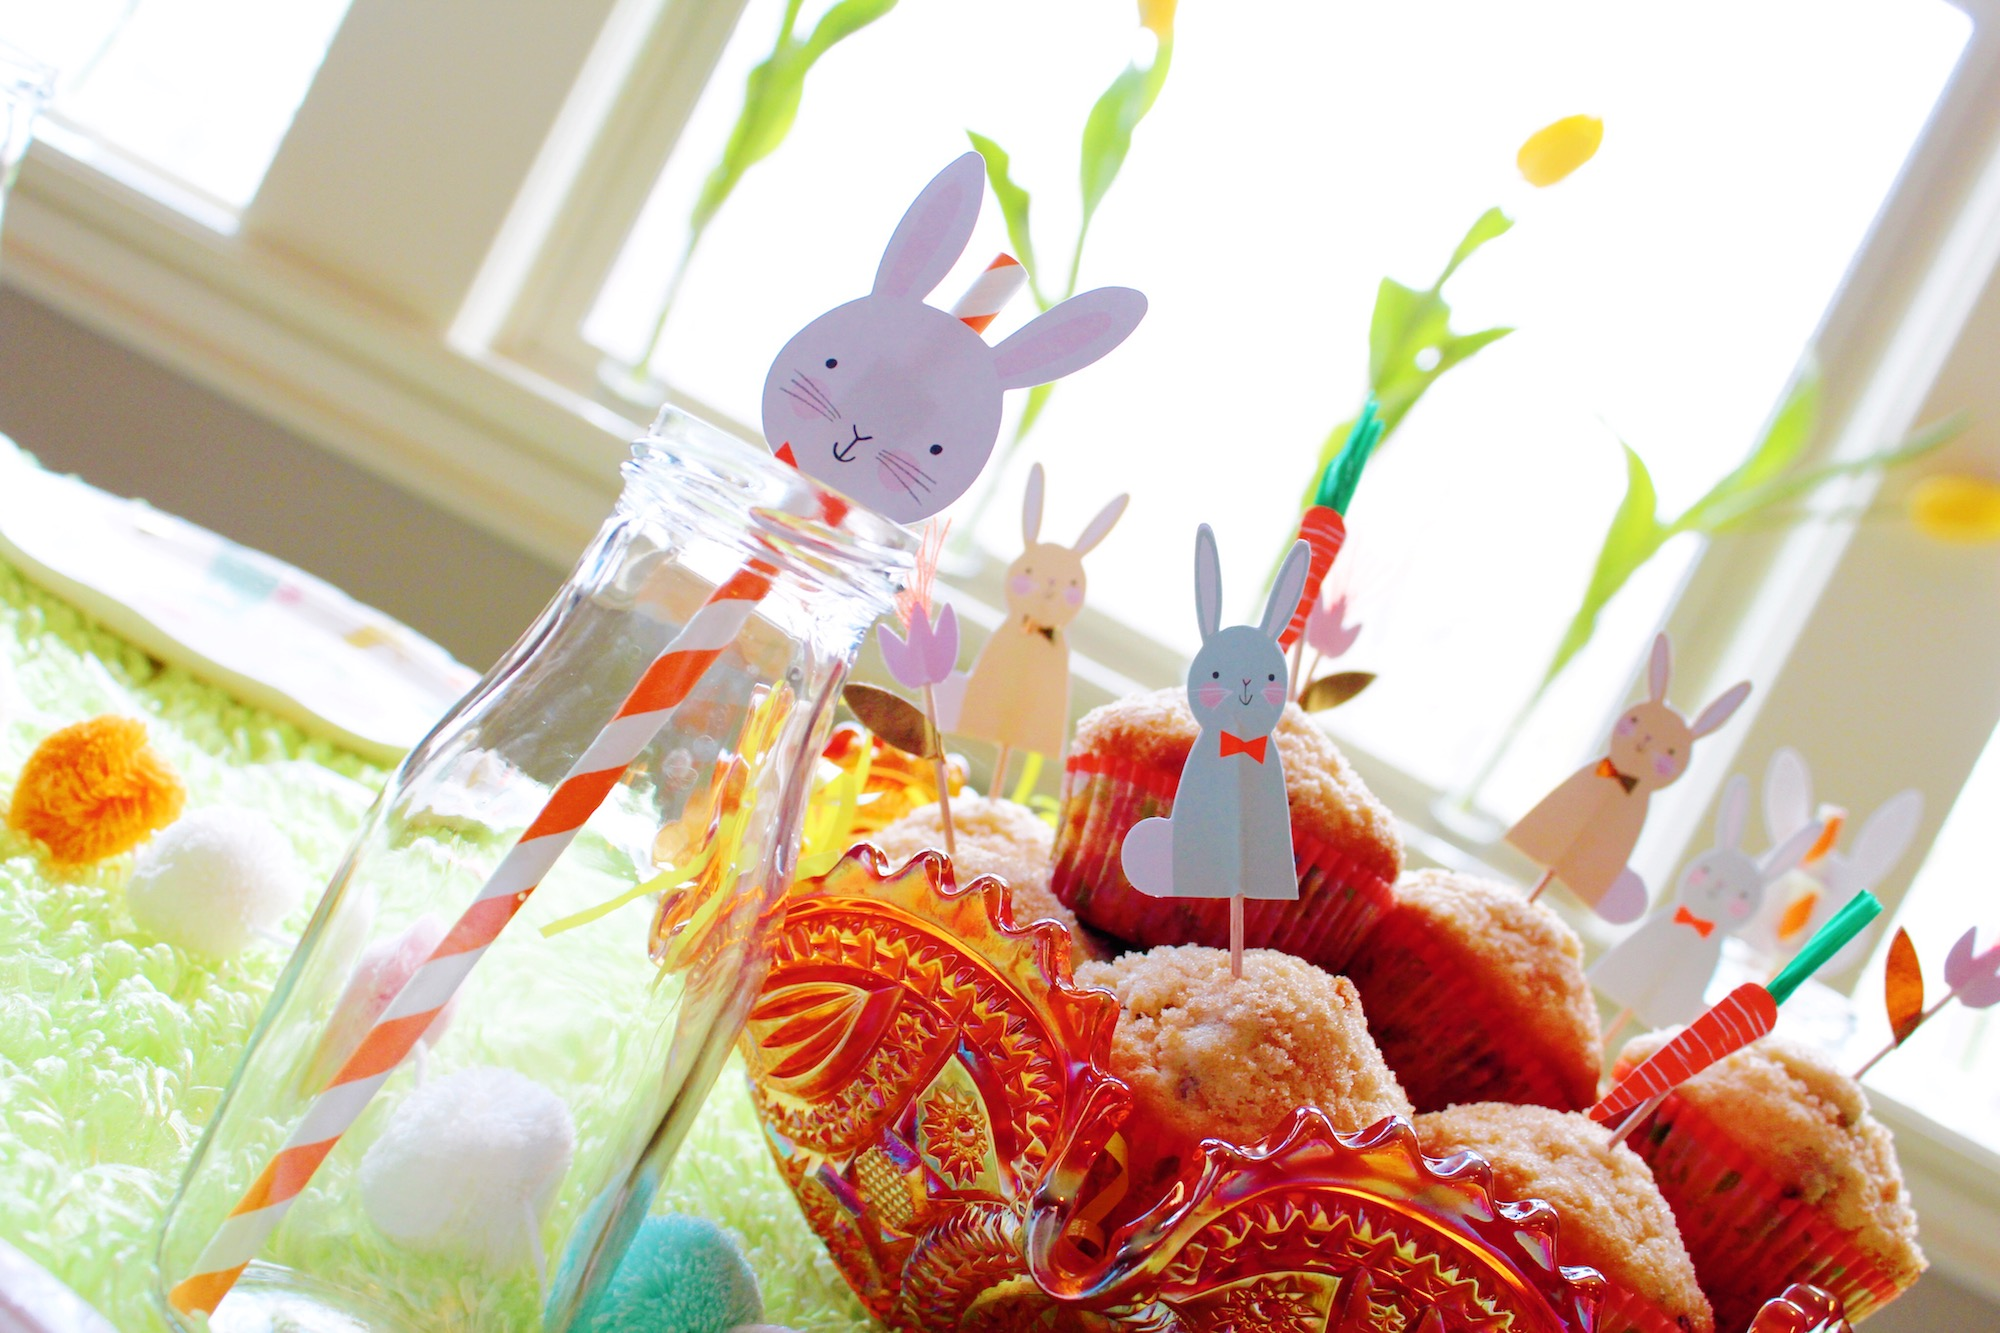 Easter bunny breakfast_Rabbit straws_Egg Hunt Muffins_Design Organize Party.JPG